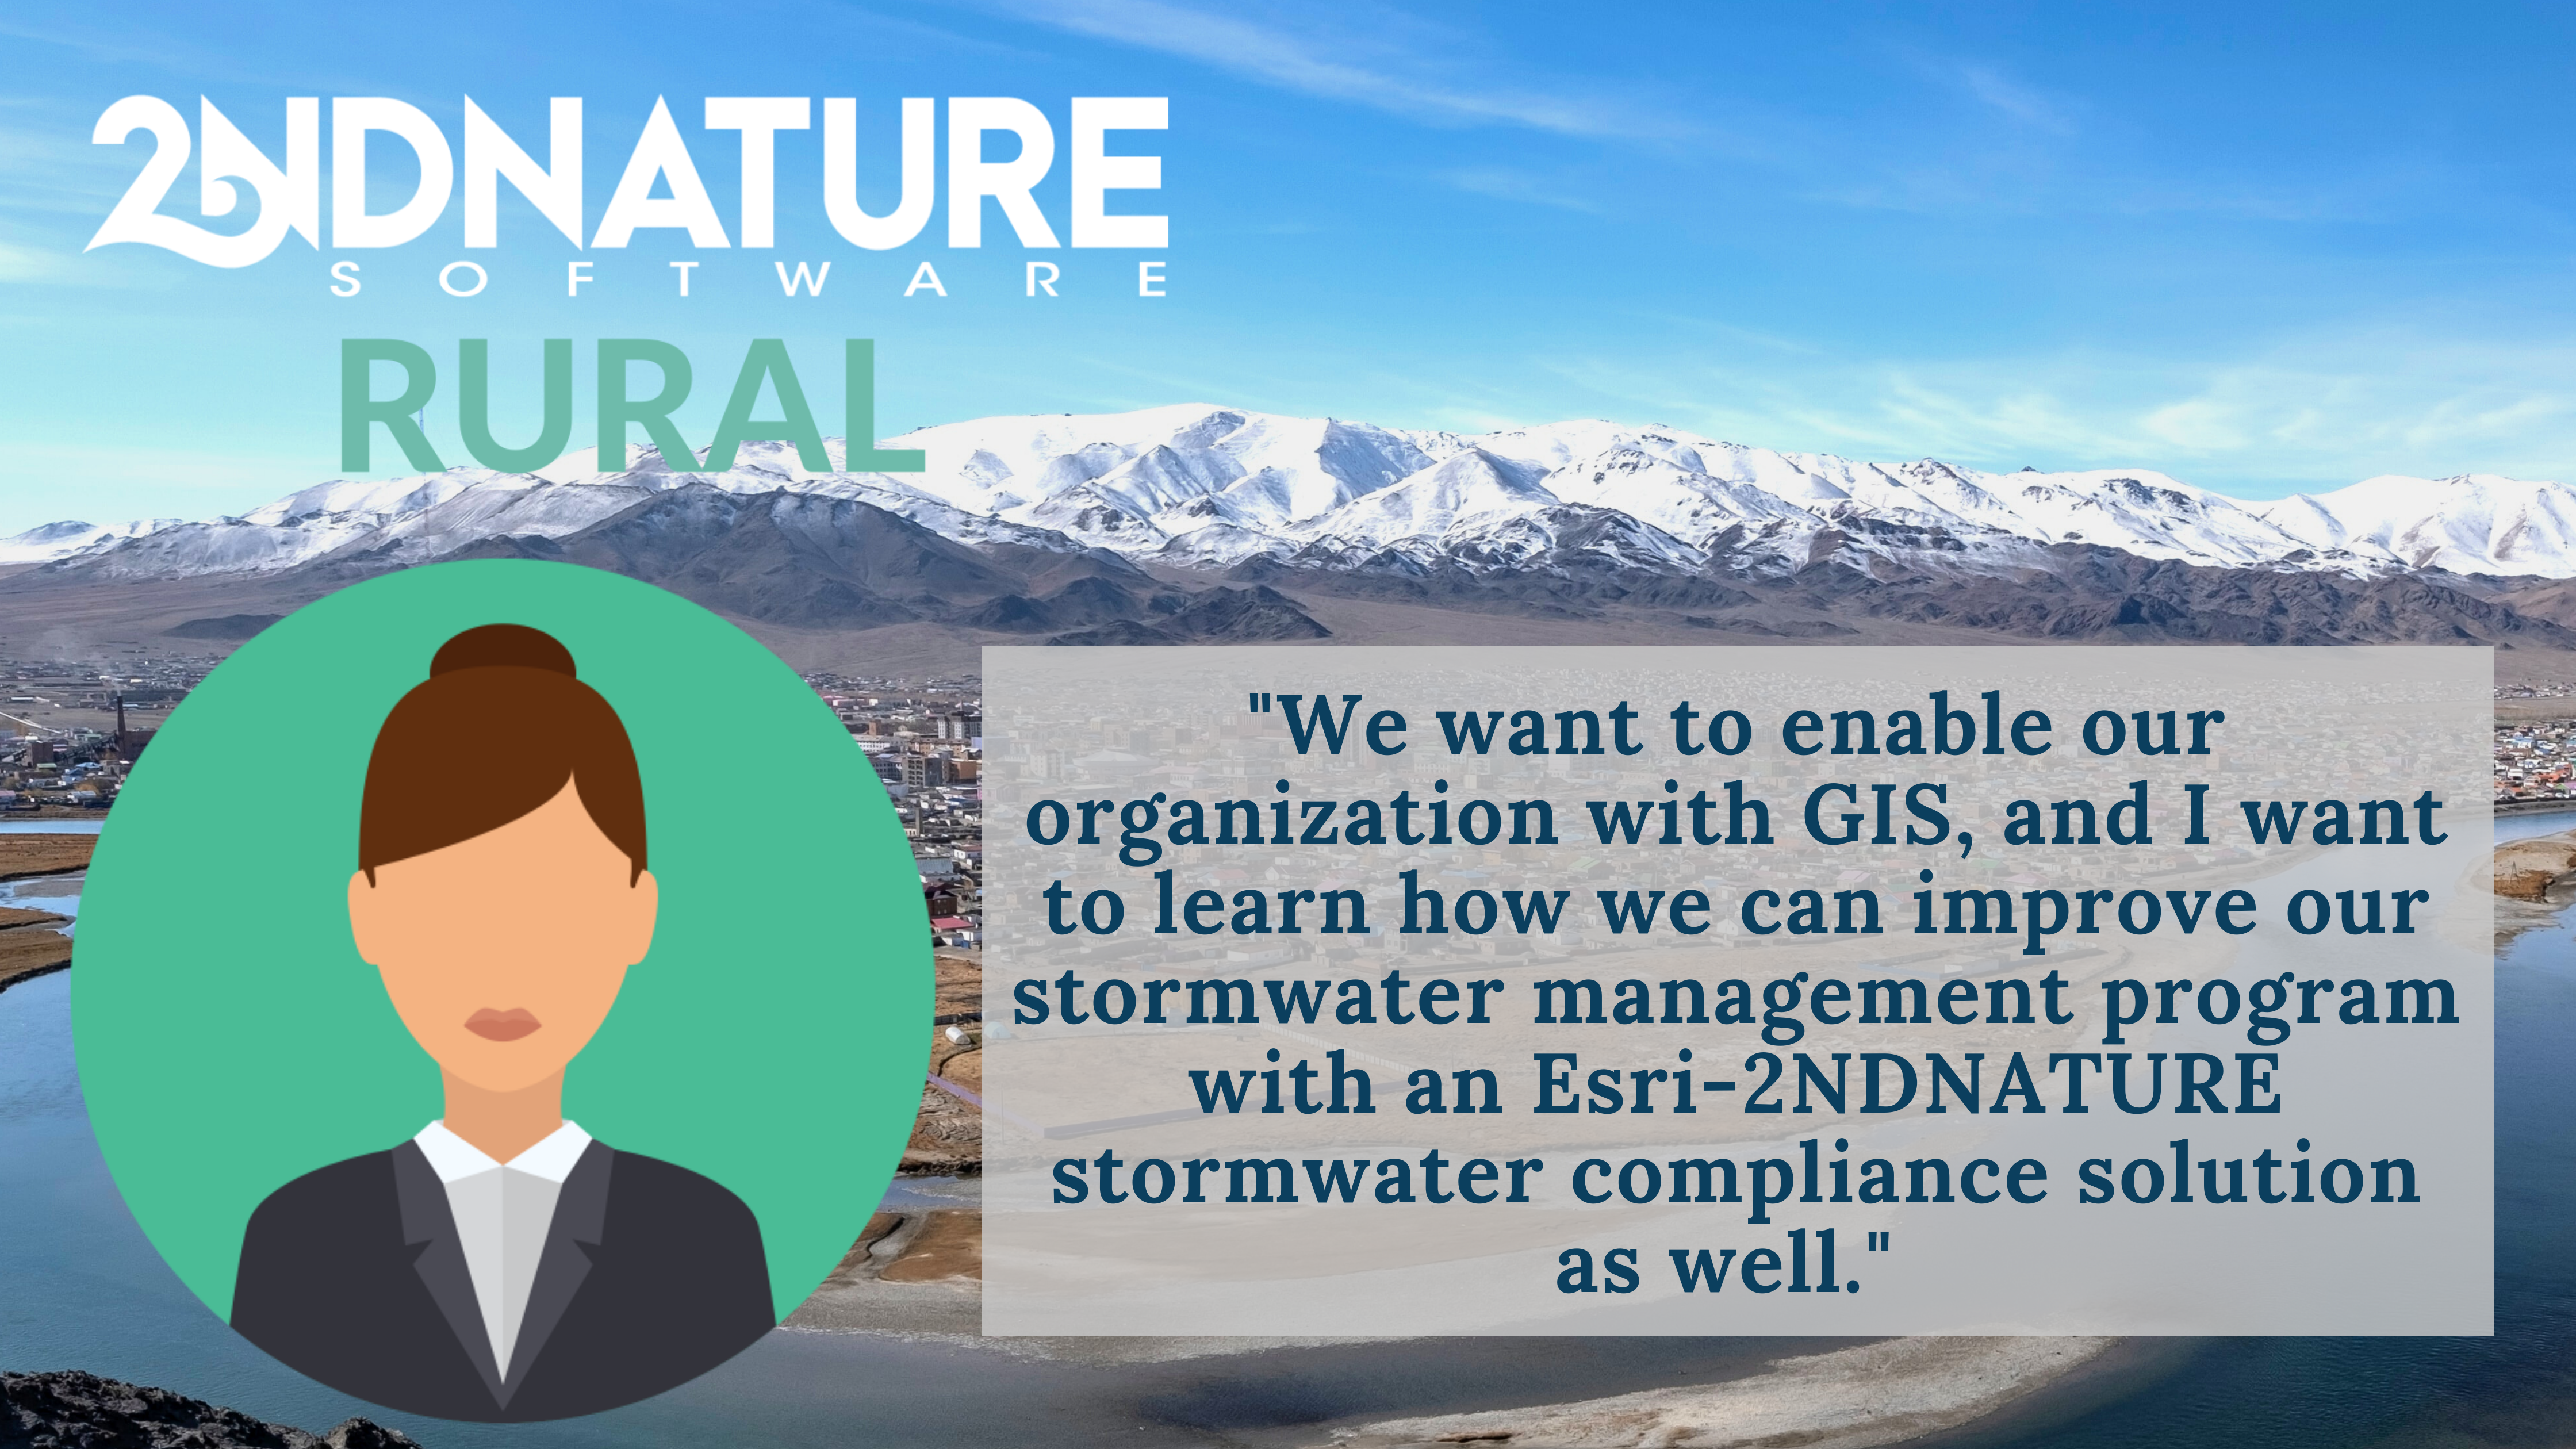 2NDNATURE RURAL Stormwater Software Solution built on Esri ArcGIS